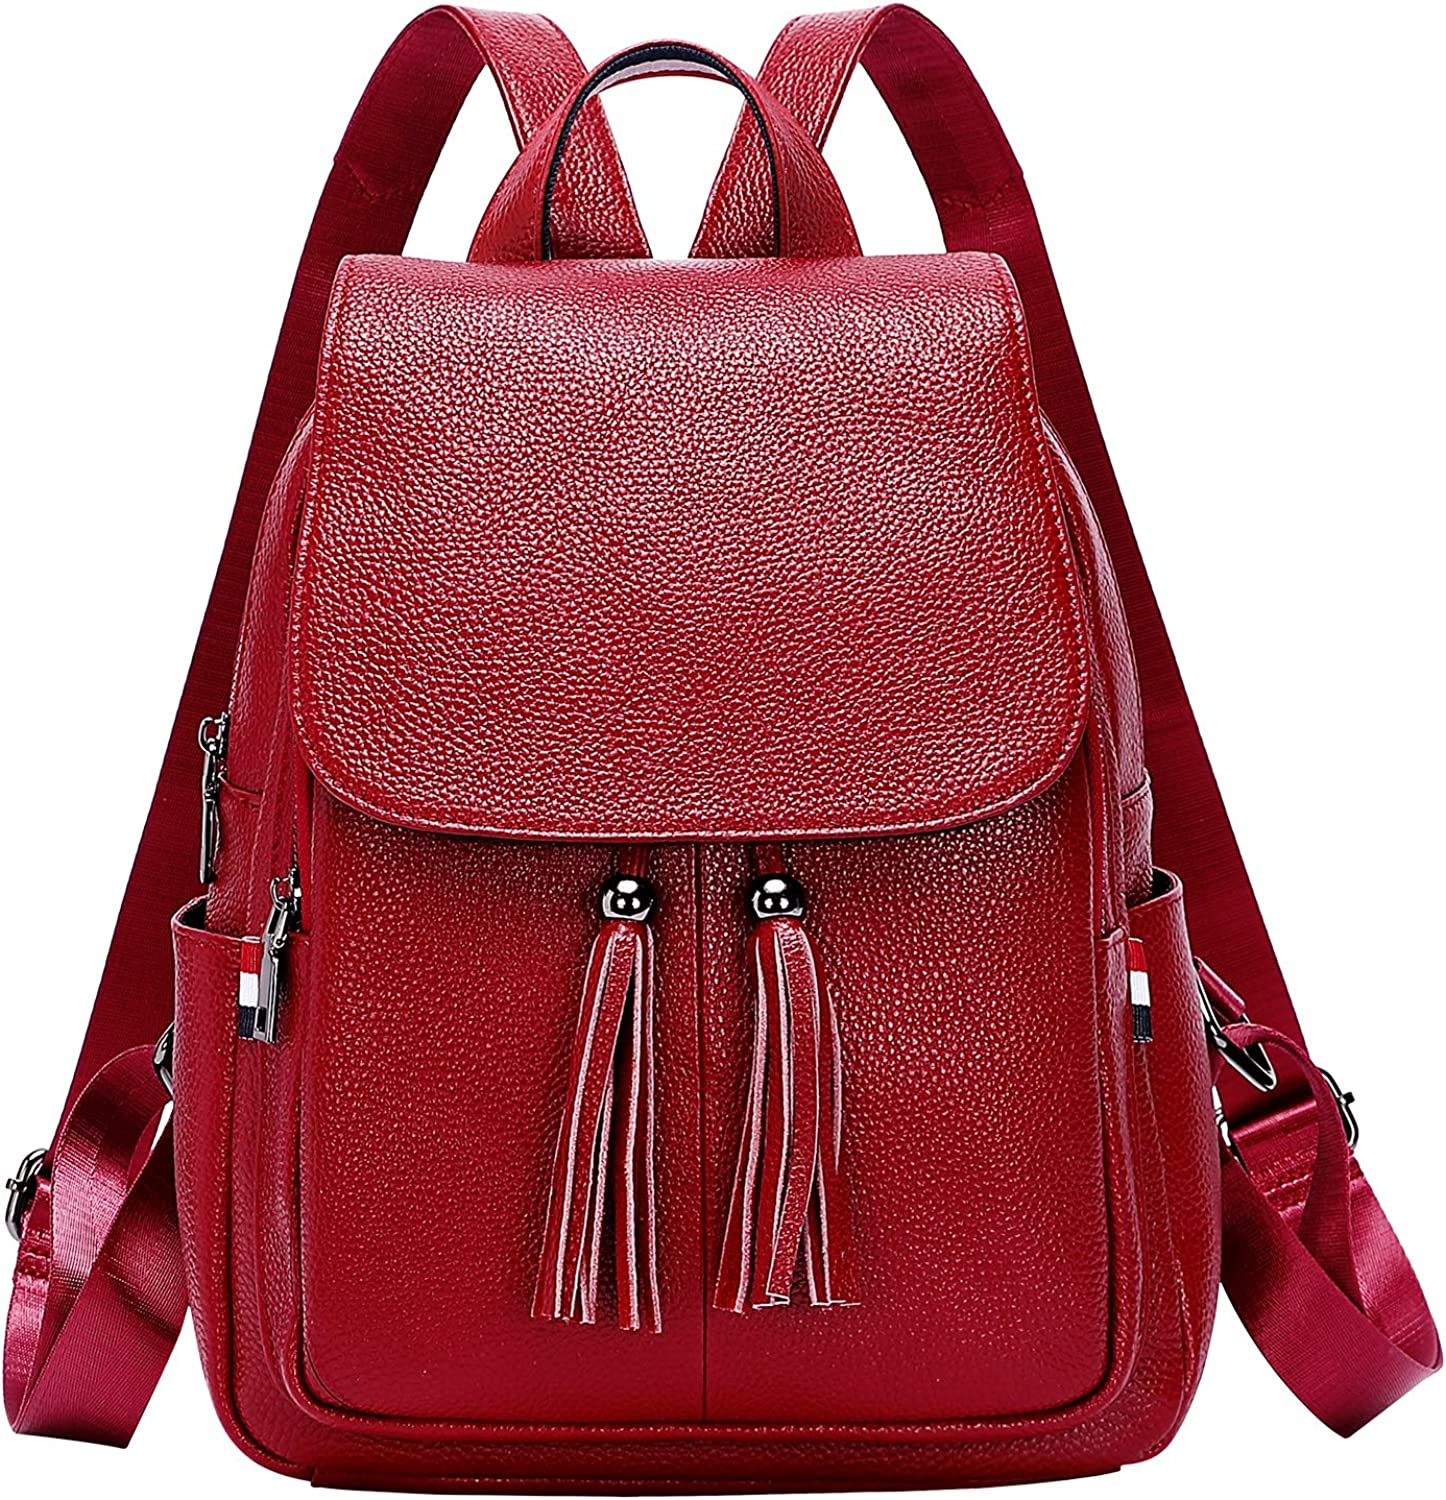 ALTOSY Genuine Leather Backpack Purse for Women Fashion Ladies Travel Bag